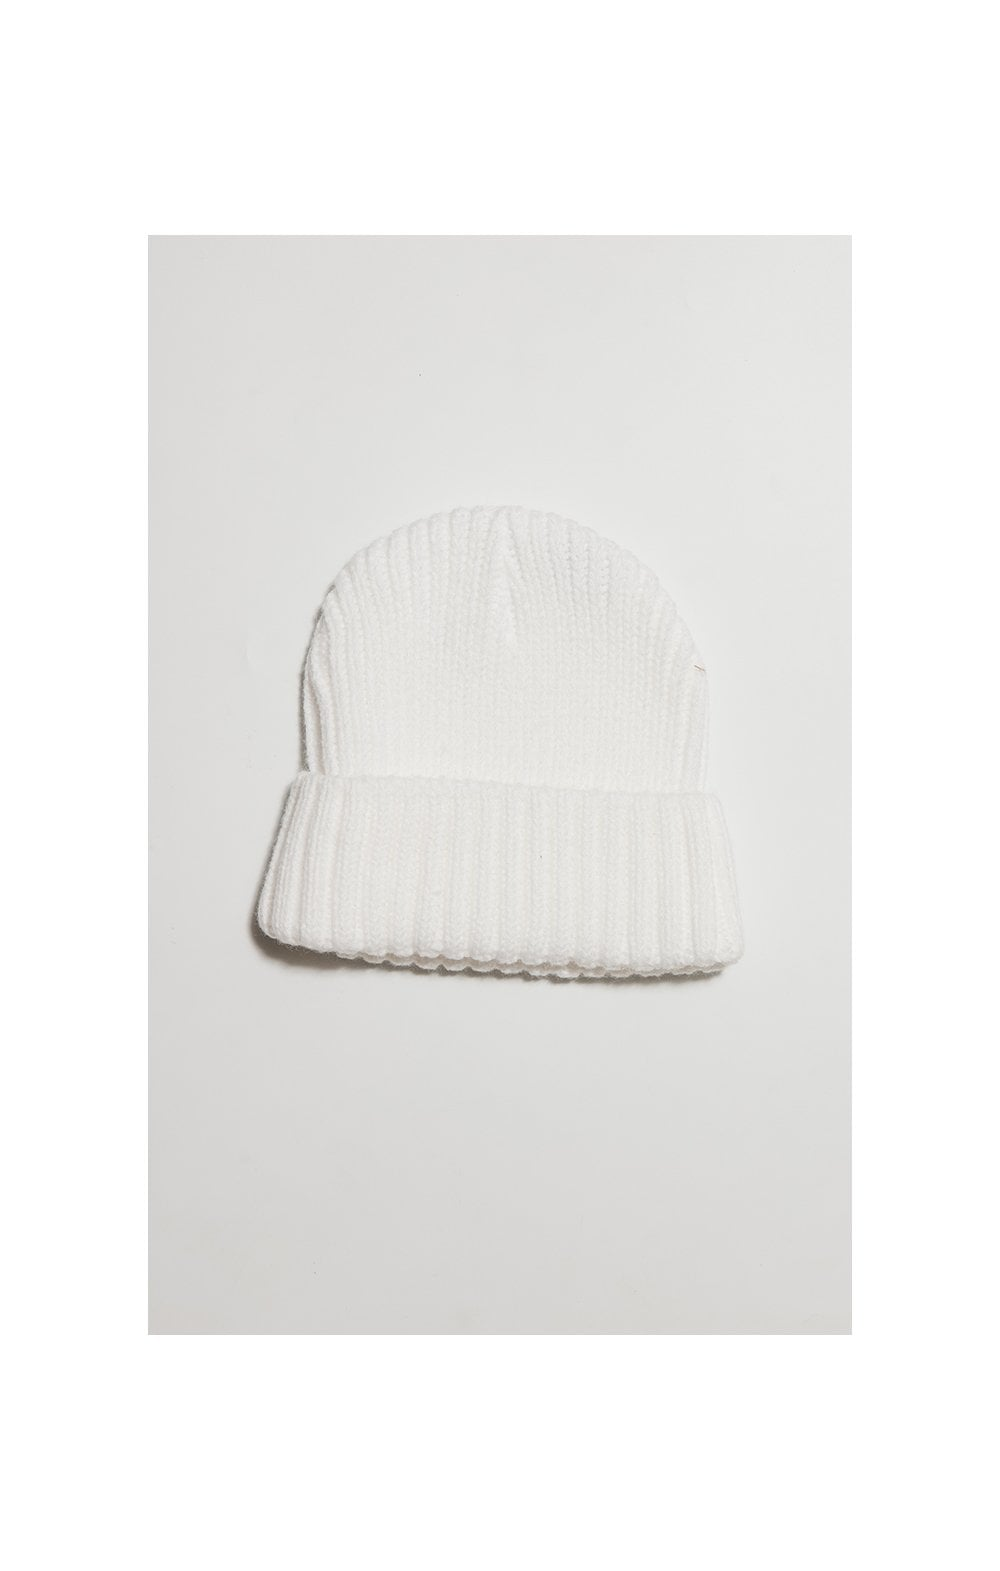 Load image into Gallery viewer, SikSilk Rib Cuff Beanie - White & Gold (1)